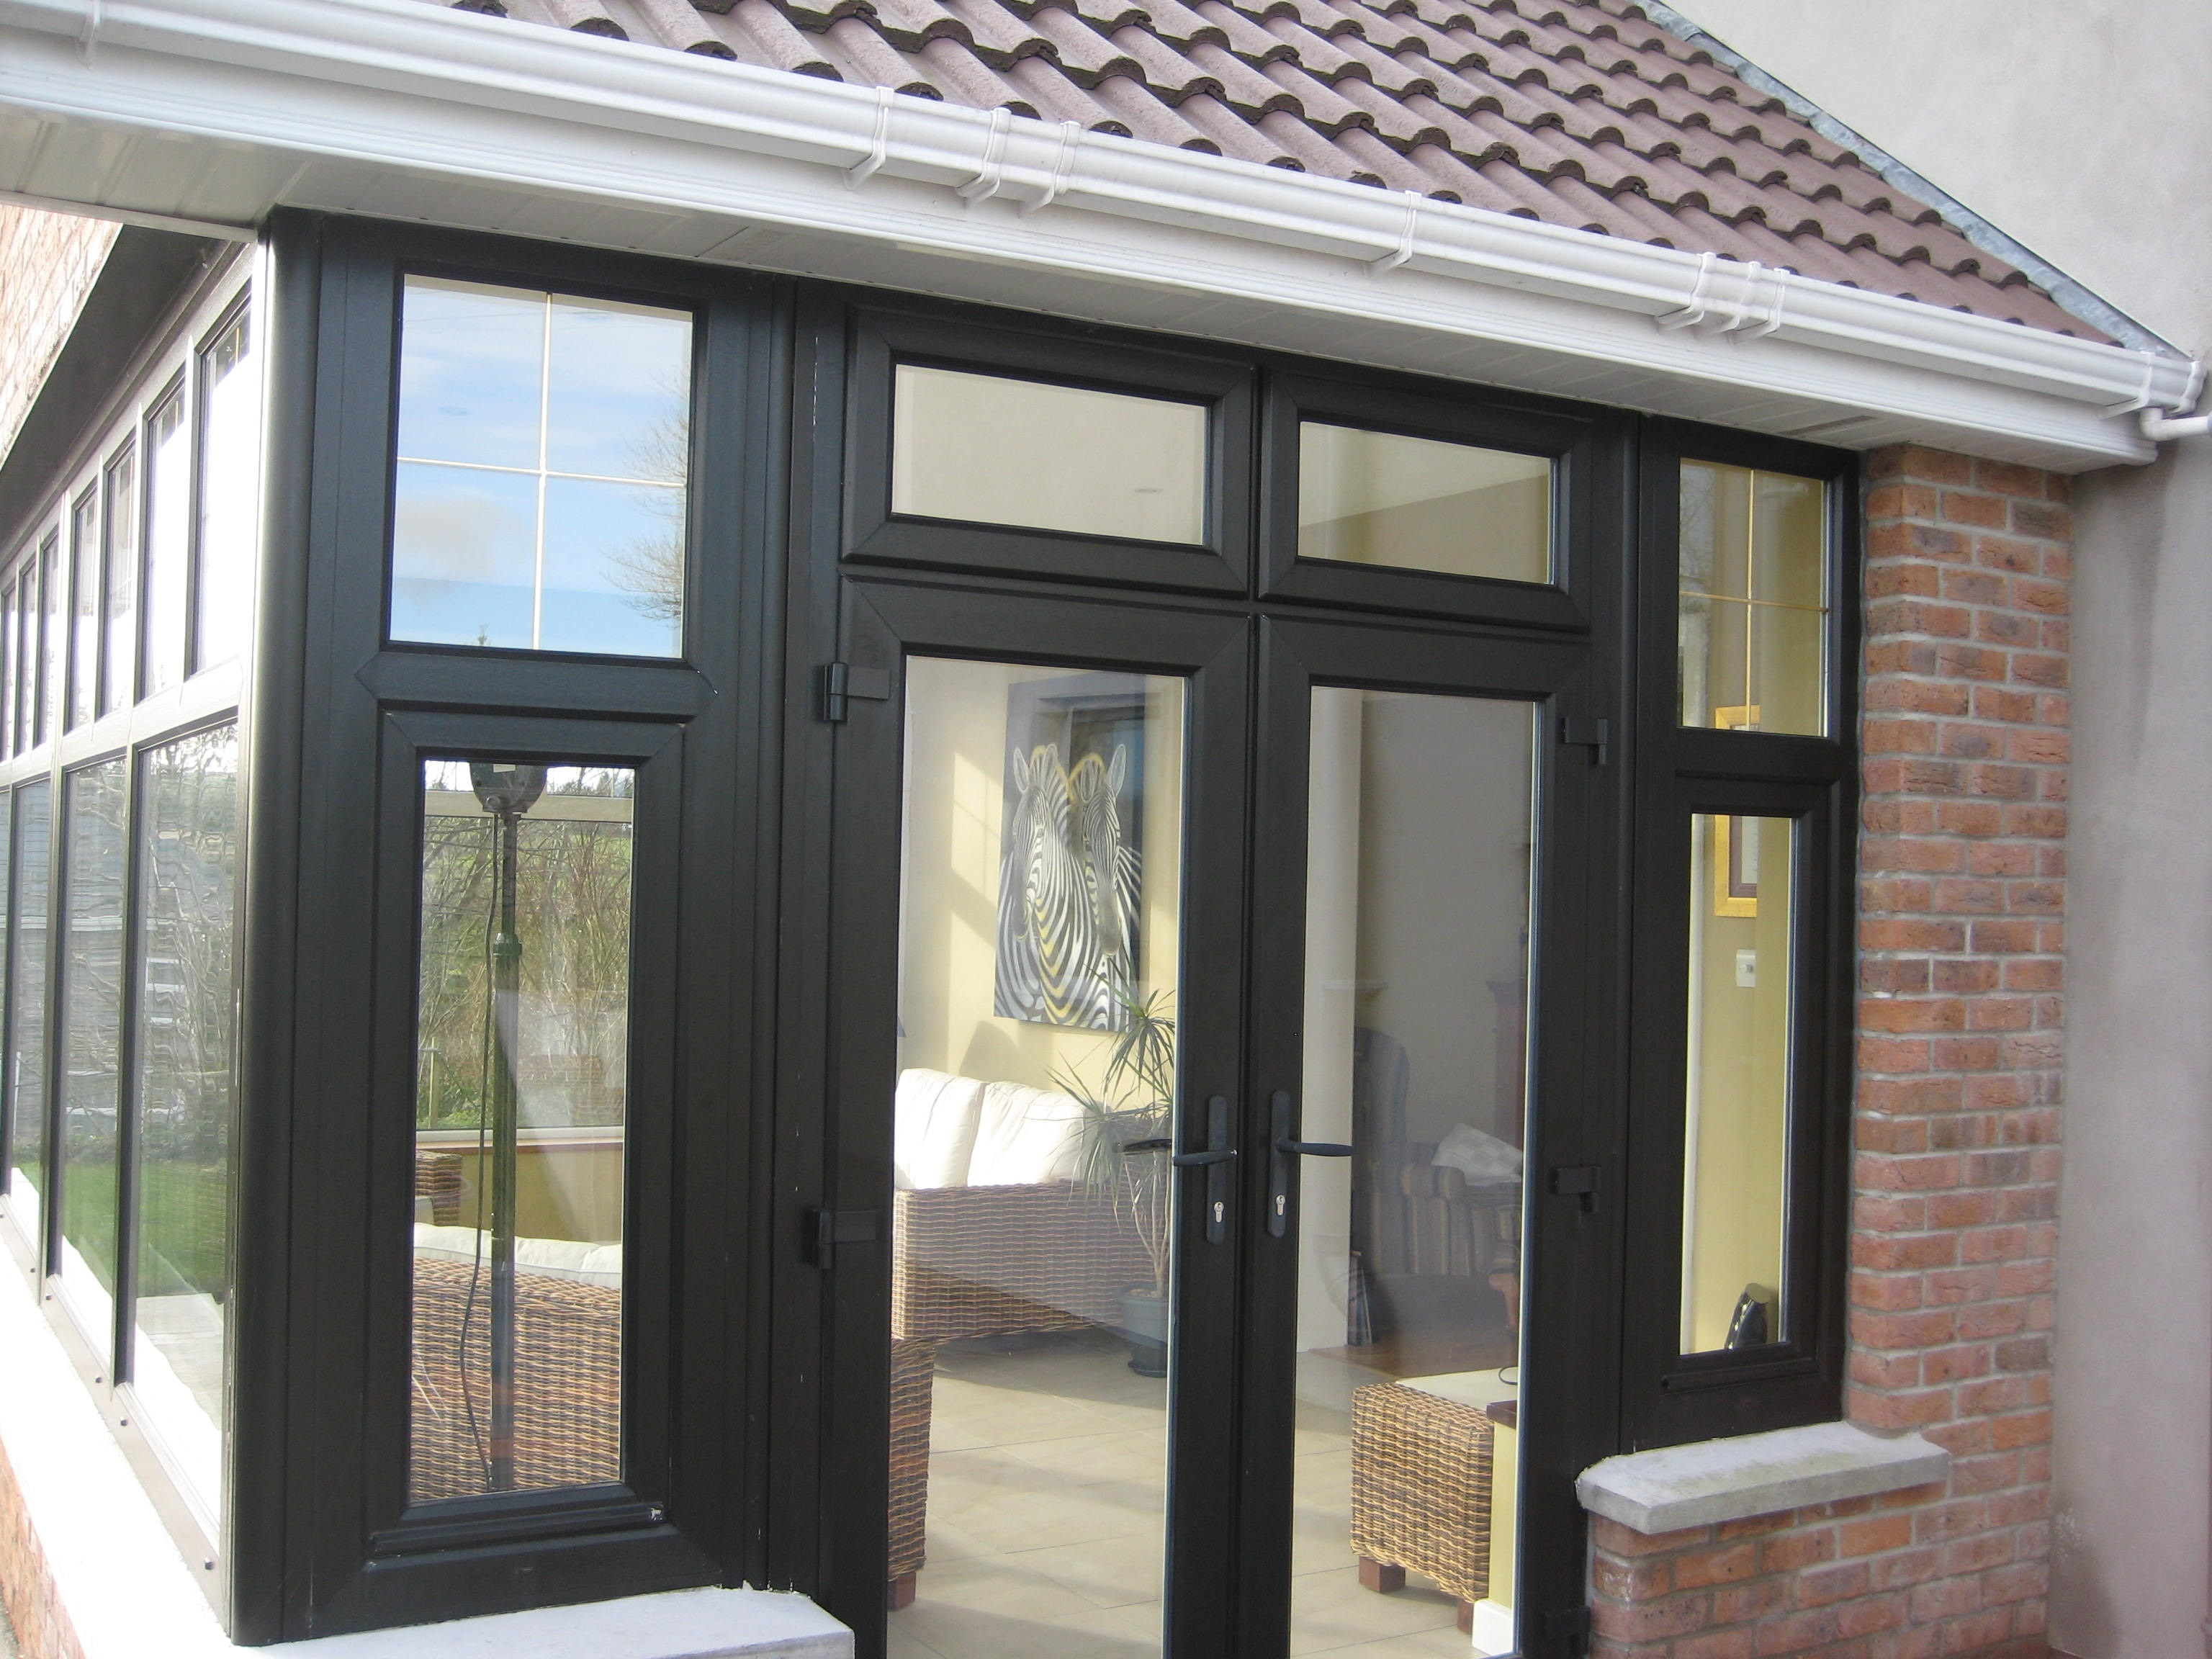 Products Kratos Windows Ltd